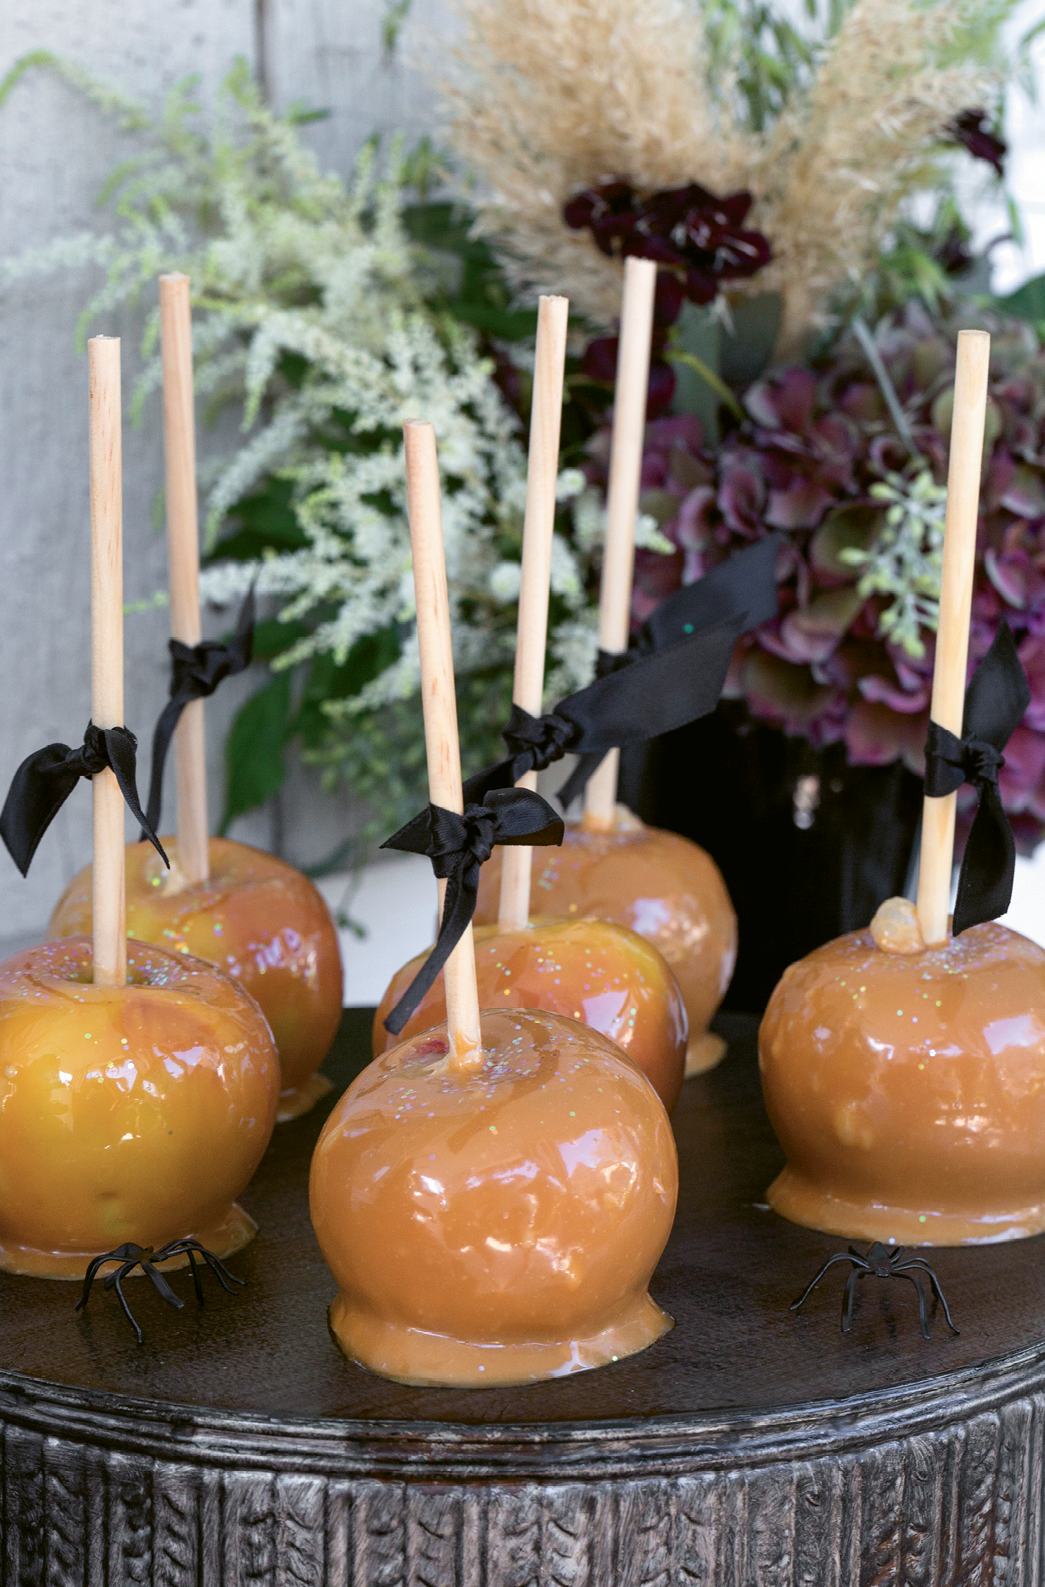 Caramel apples and candy rounded out the sweets.